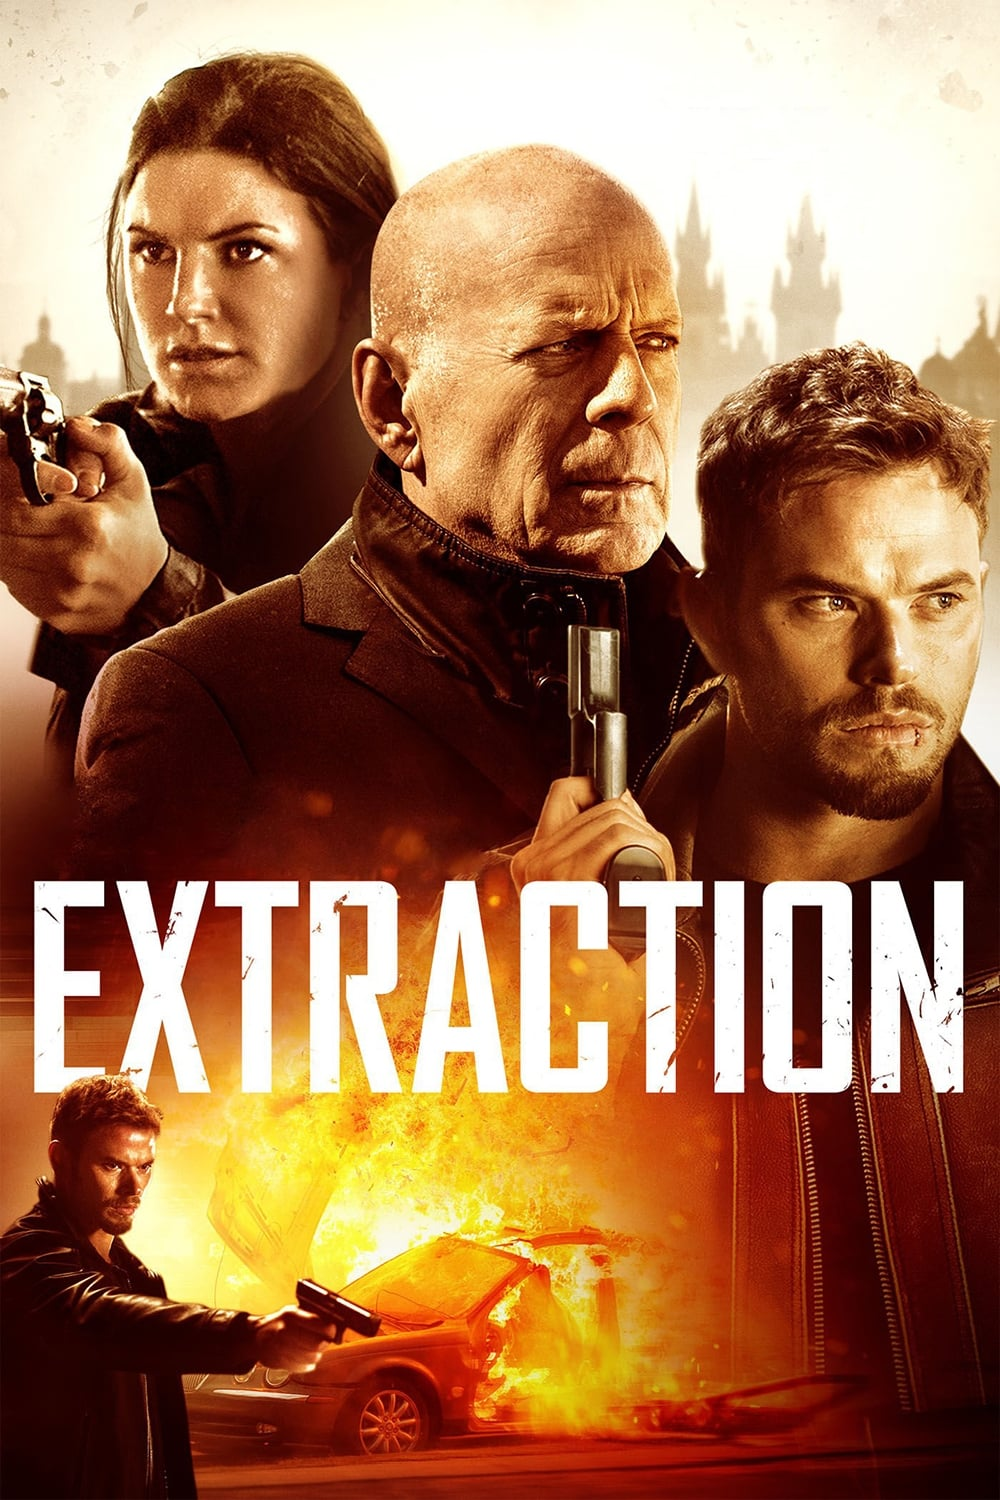 Movie review: Characters relationship makes Extraction